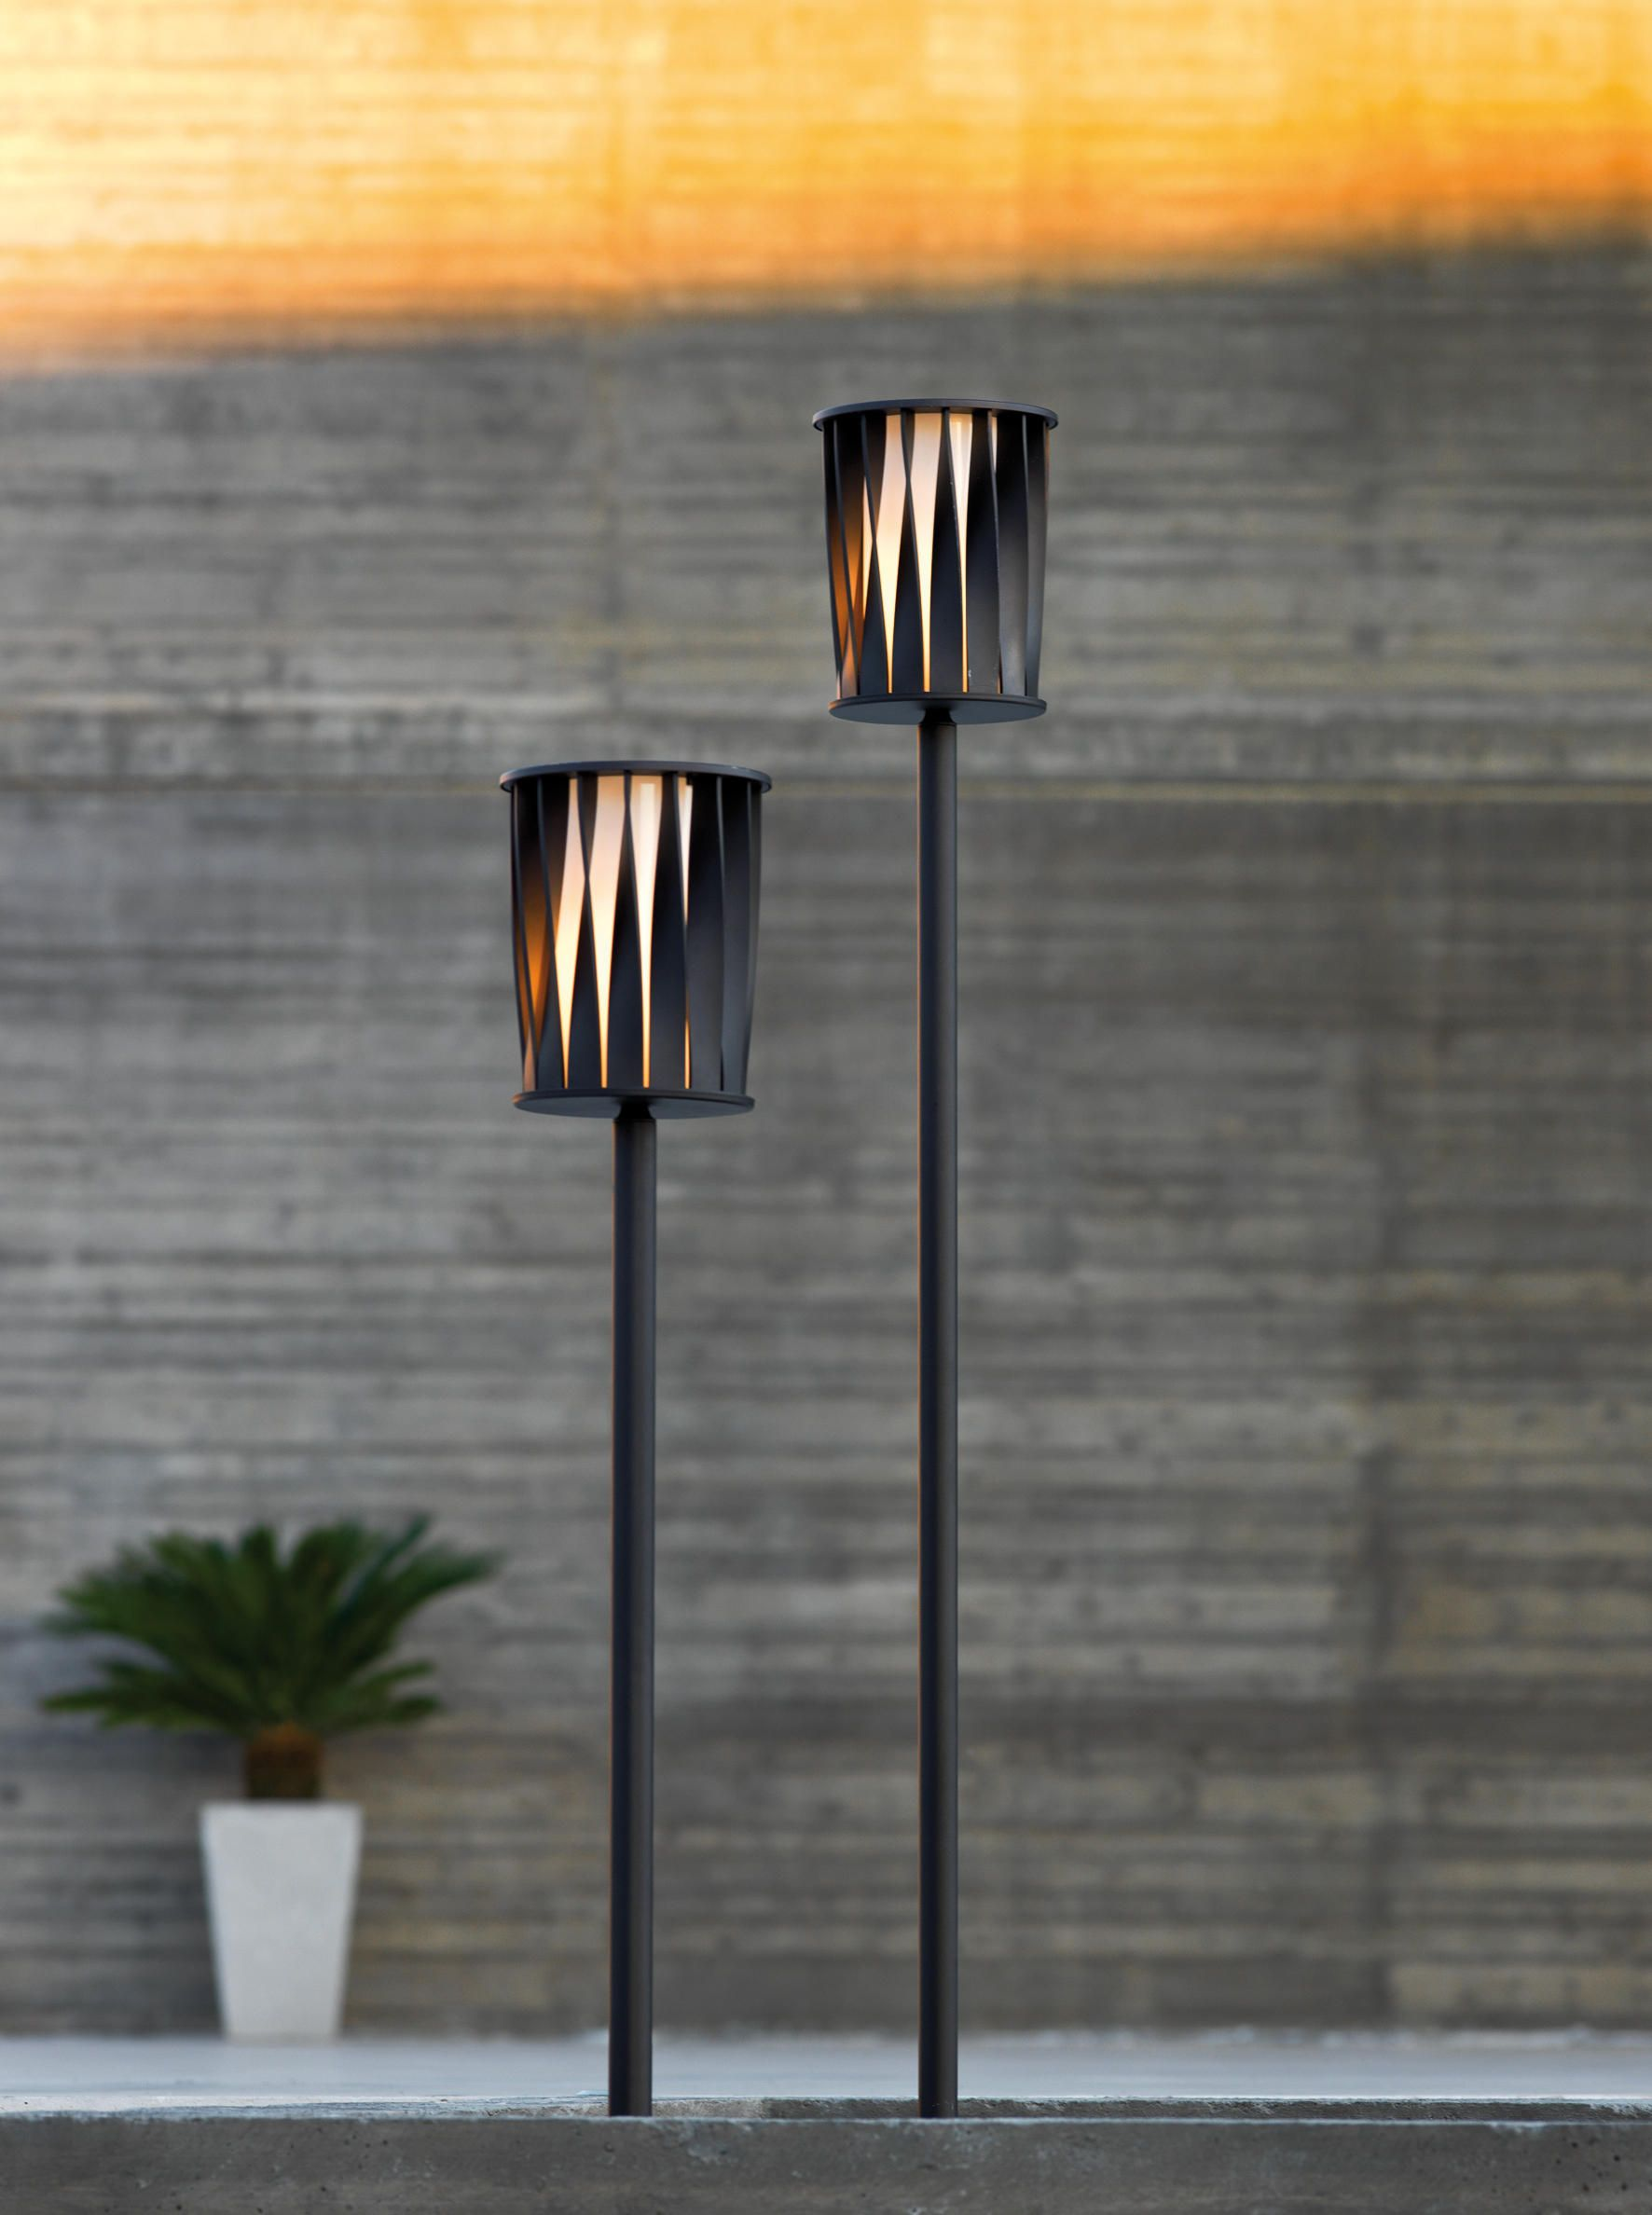 Aton Floor Lamp Designer Freestanding Floor Lamps From Unopiu All Information High Resolution Images Cads Catalogues Lamp Porch Lamp Standing Lamp